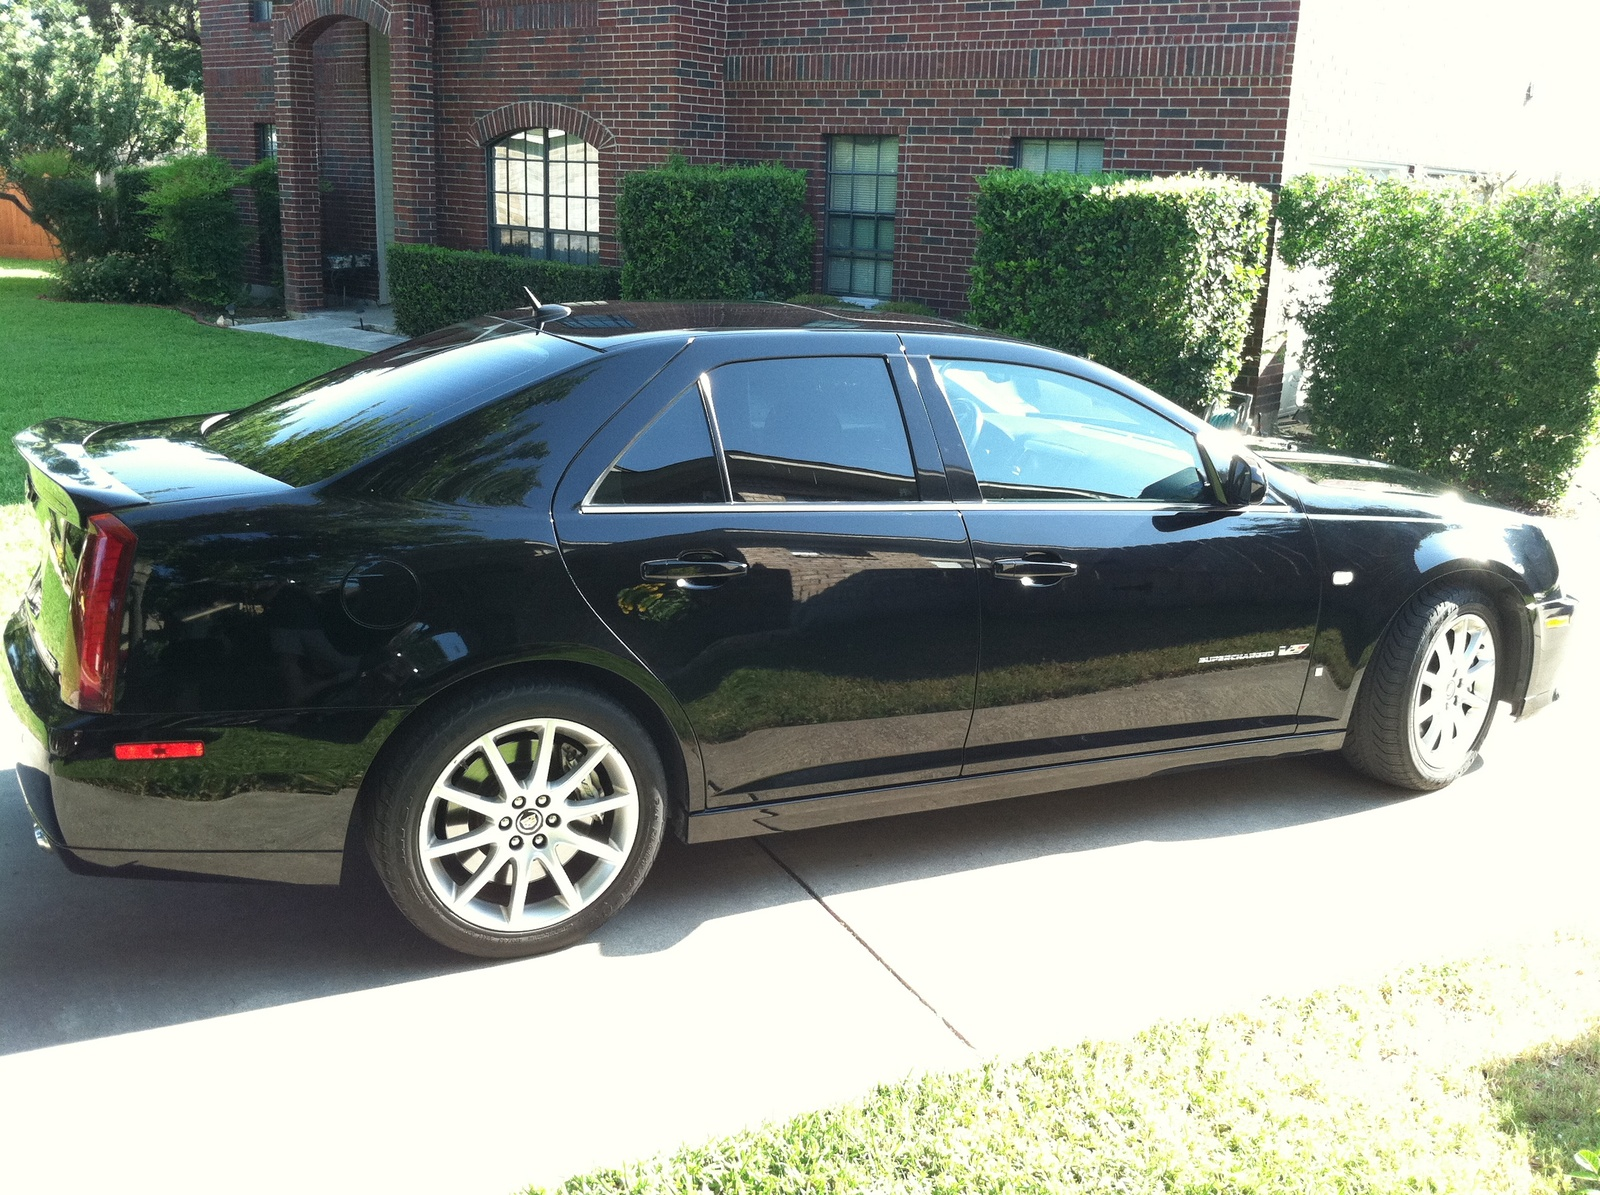 picture of 2006 cadillac sts v 4dr sedan exterior. Cars Review. Best American Auto & Cars Review